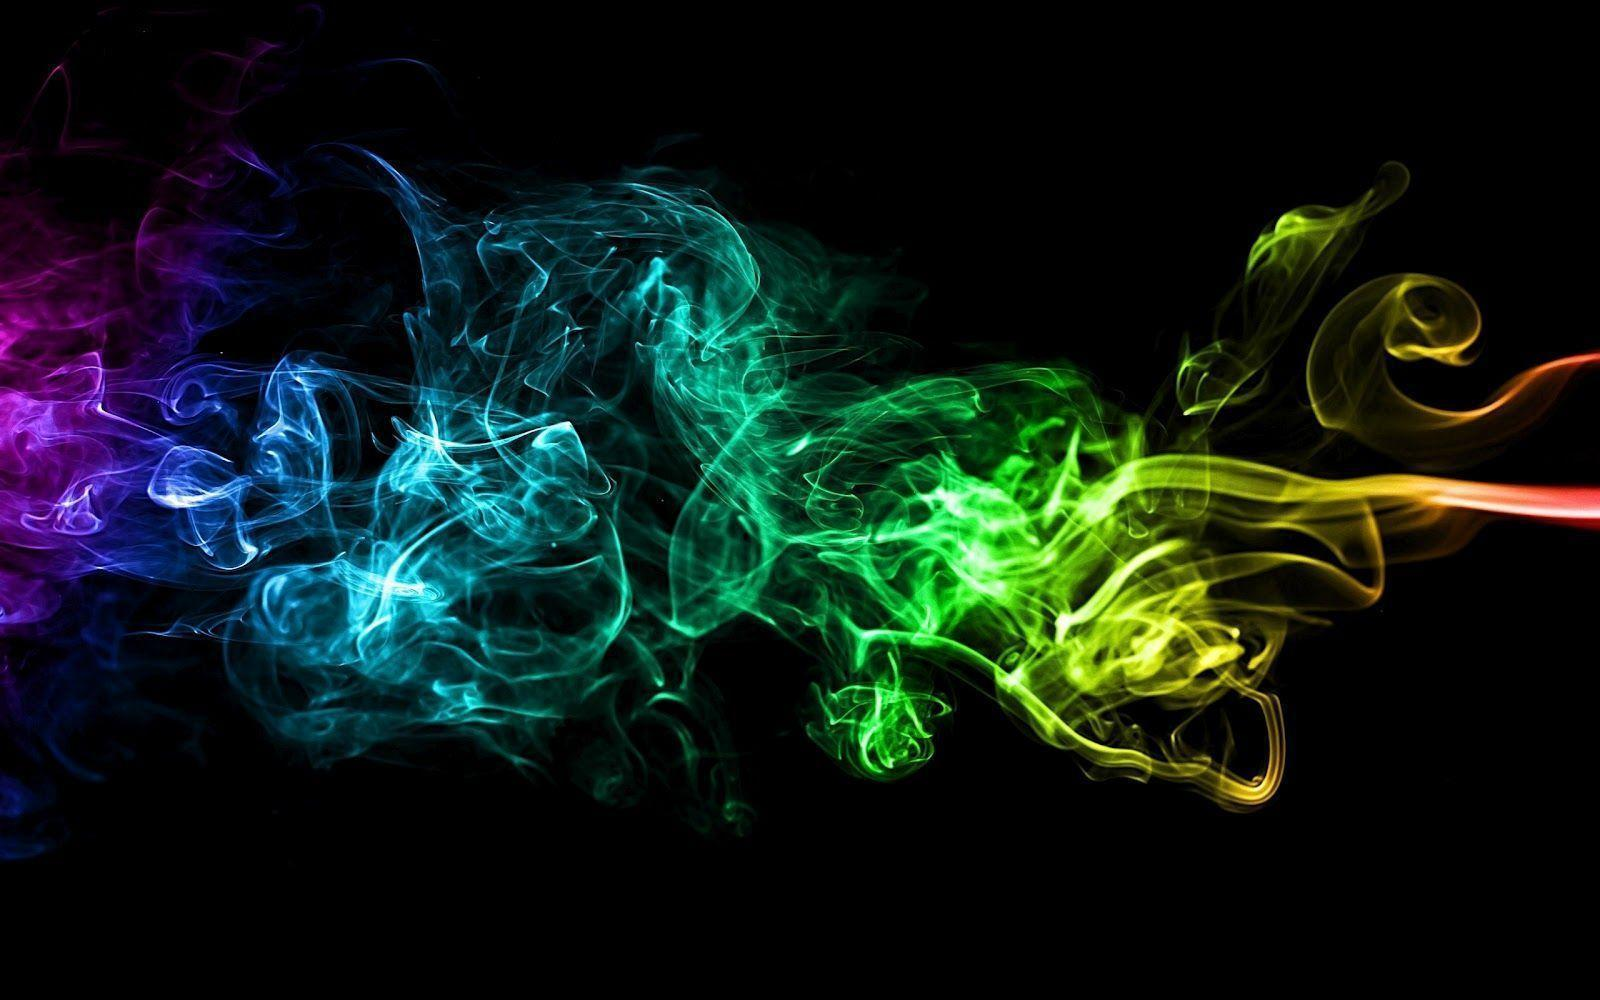 hd 1080p wallpaper smoke - photo #24